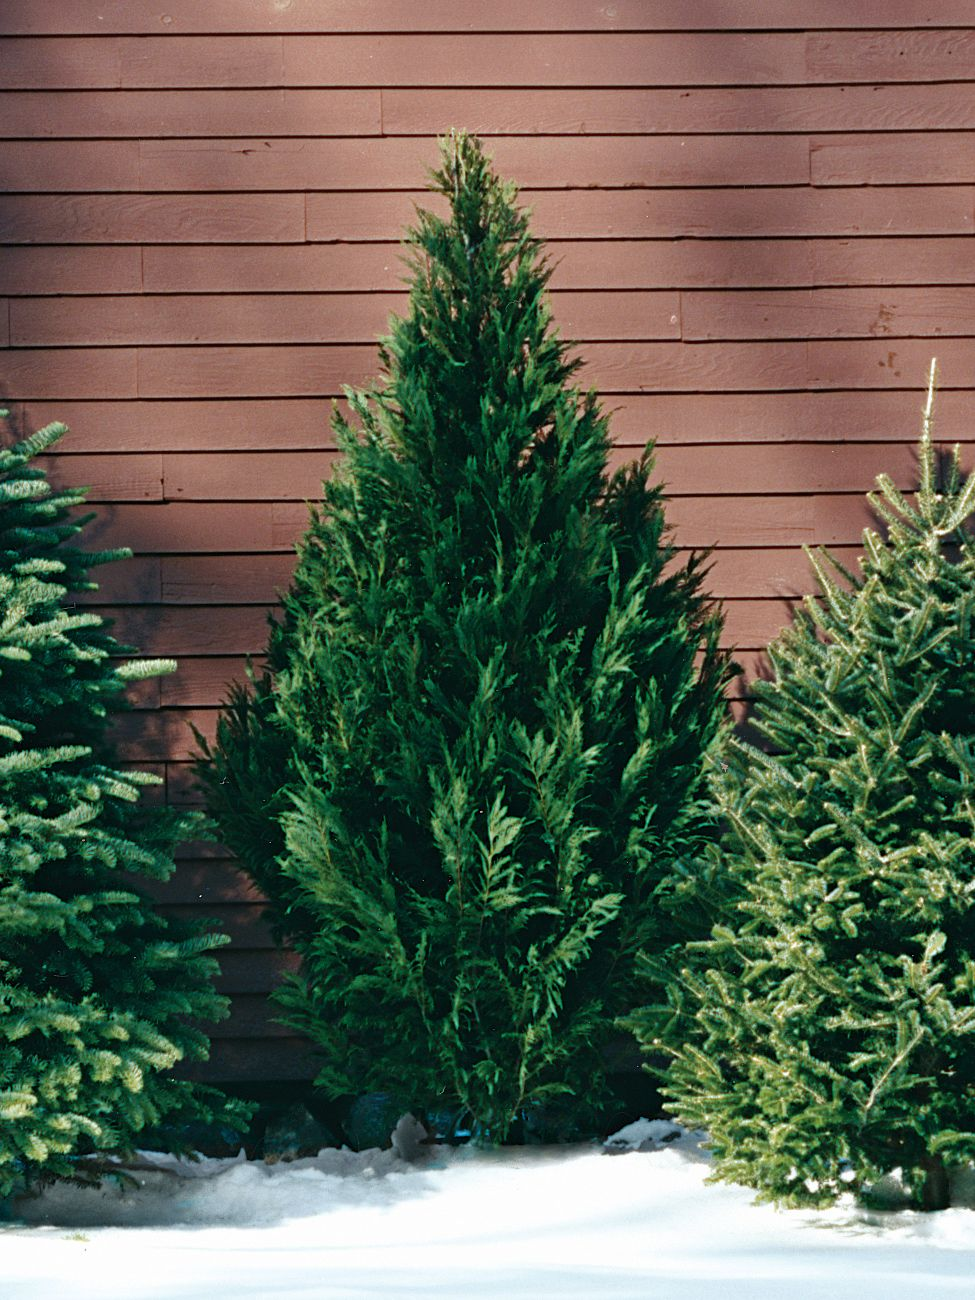 A Guide To All The Different Types Of Christmas Trees Types Of Christmas Trees Leyland Cypress Christmas Tree Varieties